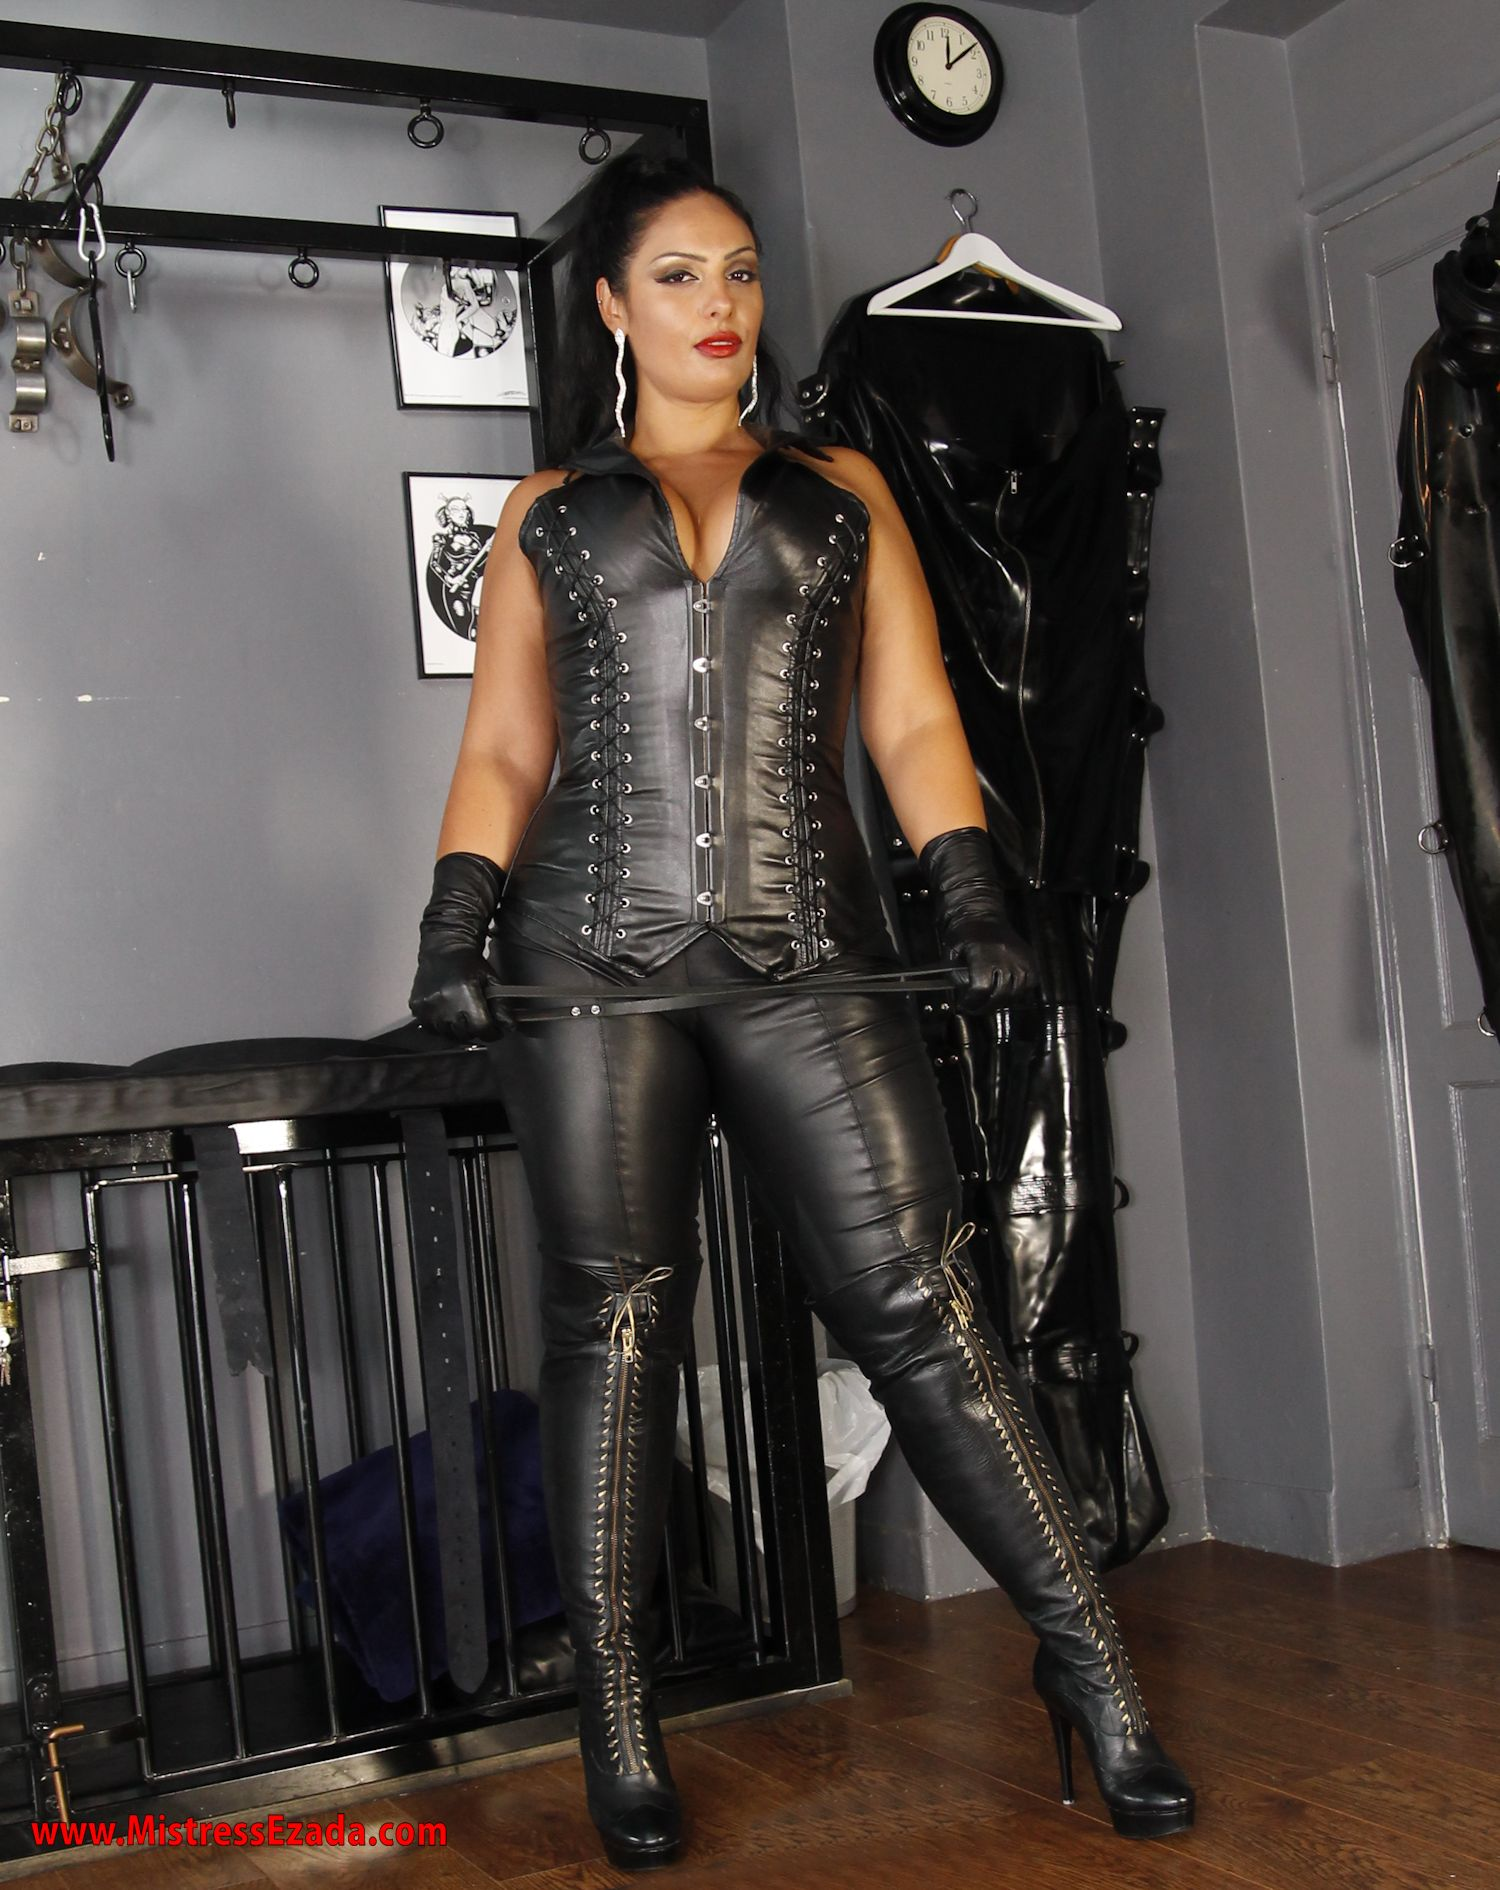 Pvc full outfit domination fetish gothic super catsuit jump suit costume for sale online